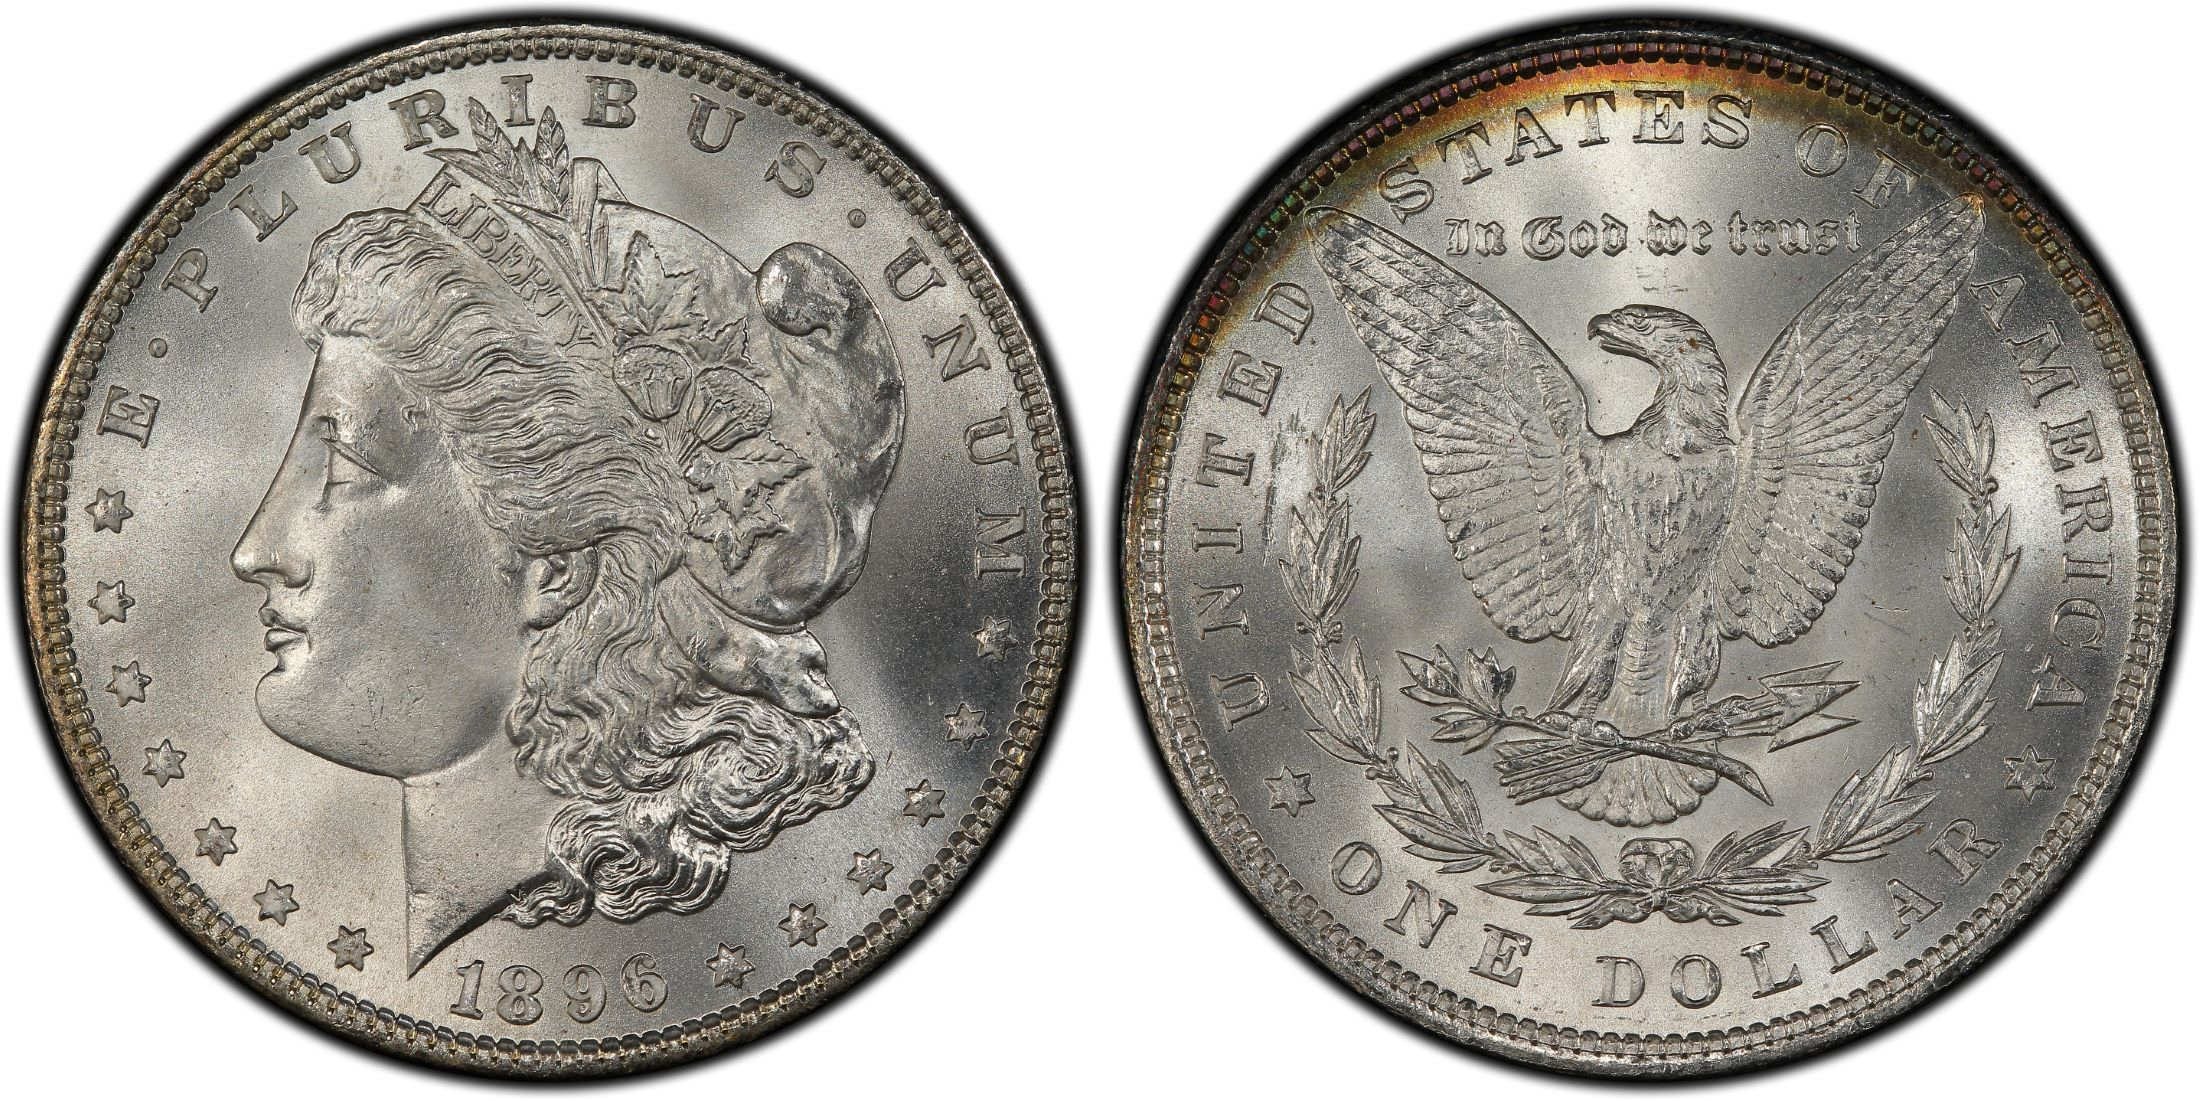 1896 US Morgan Silver Dollar $1 PCGS MS64